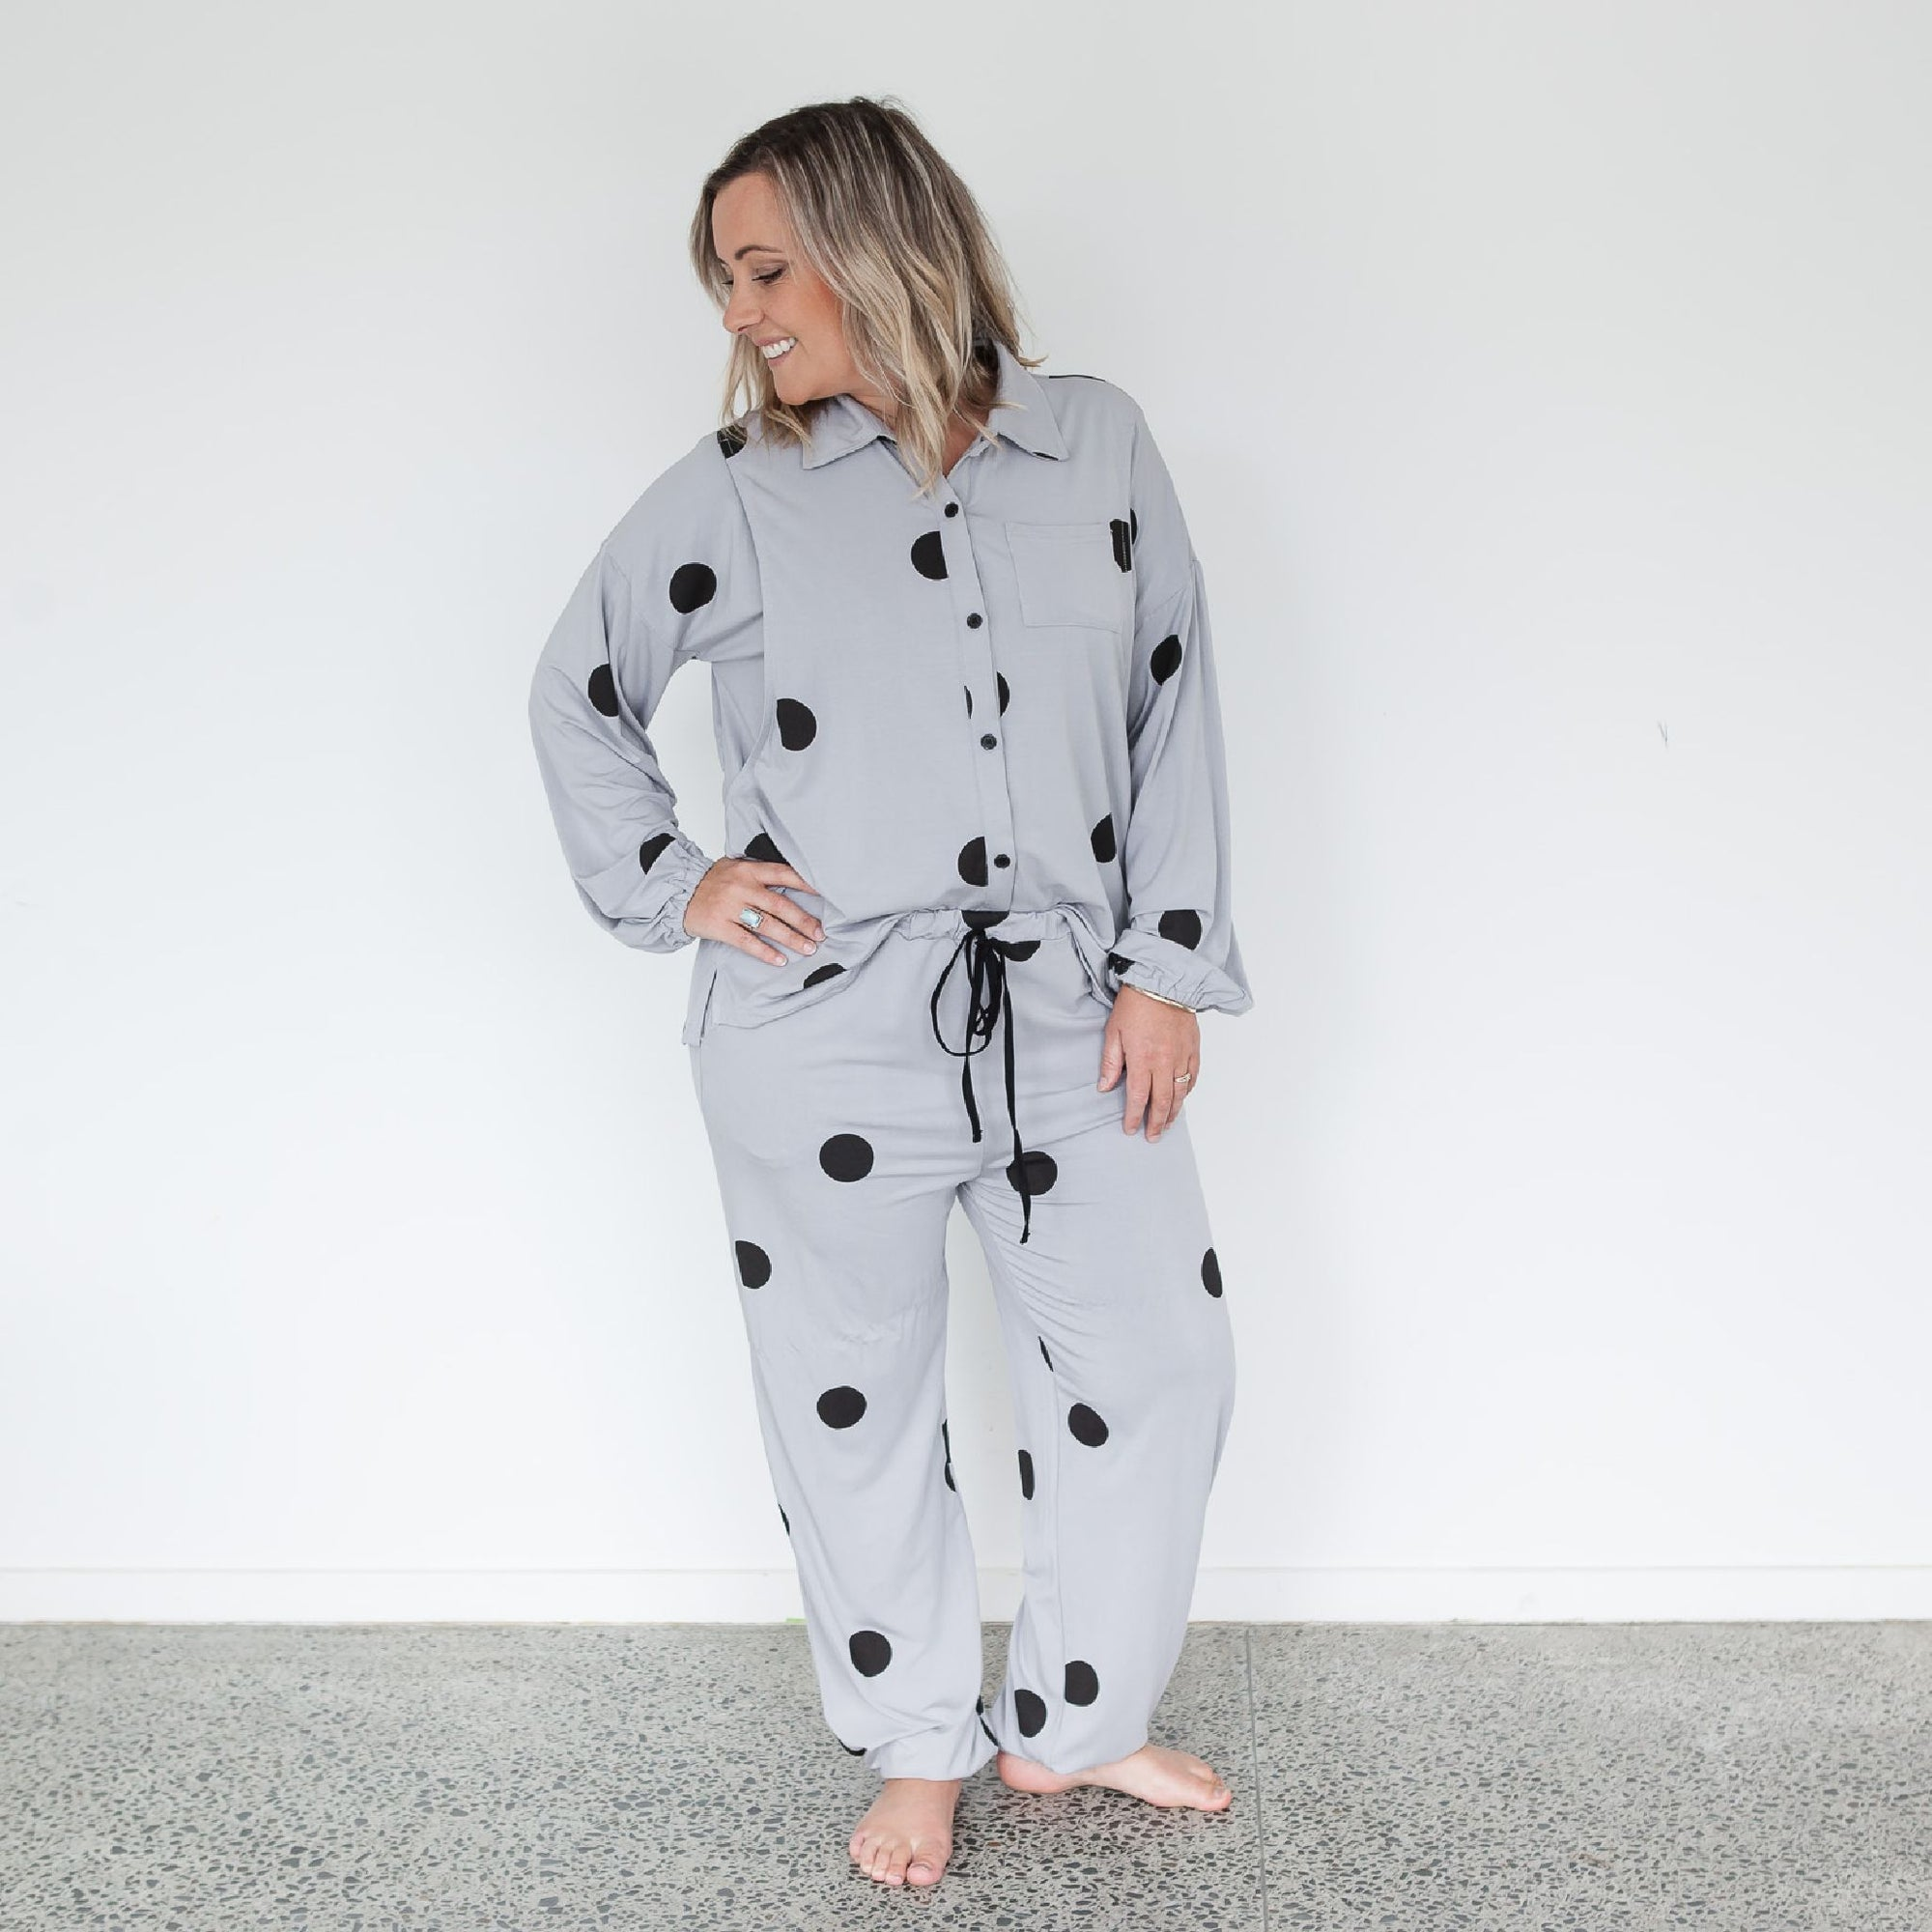 Breastfeeding Pyjamas | Casper Polka Dot